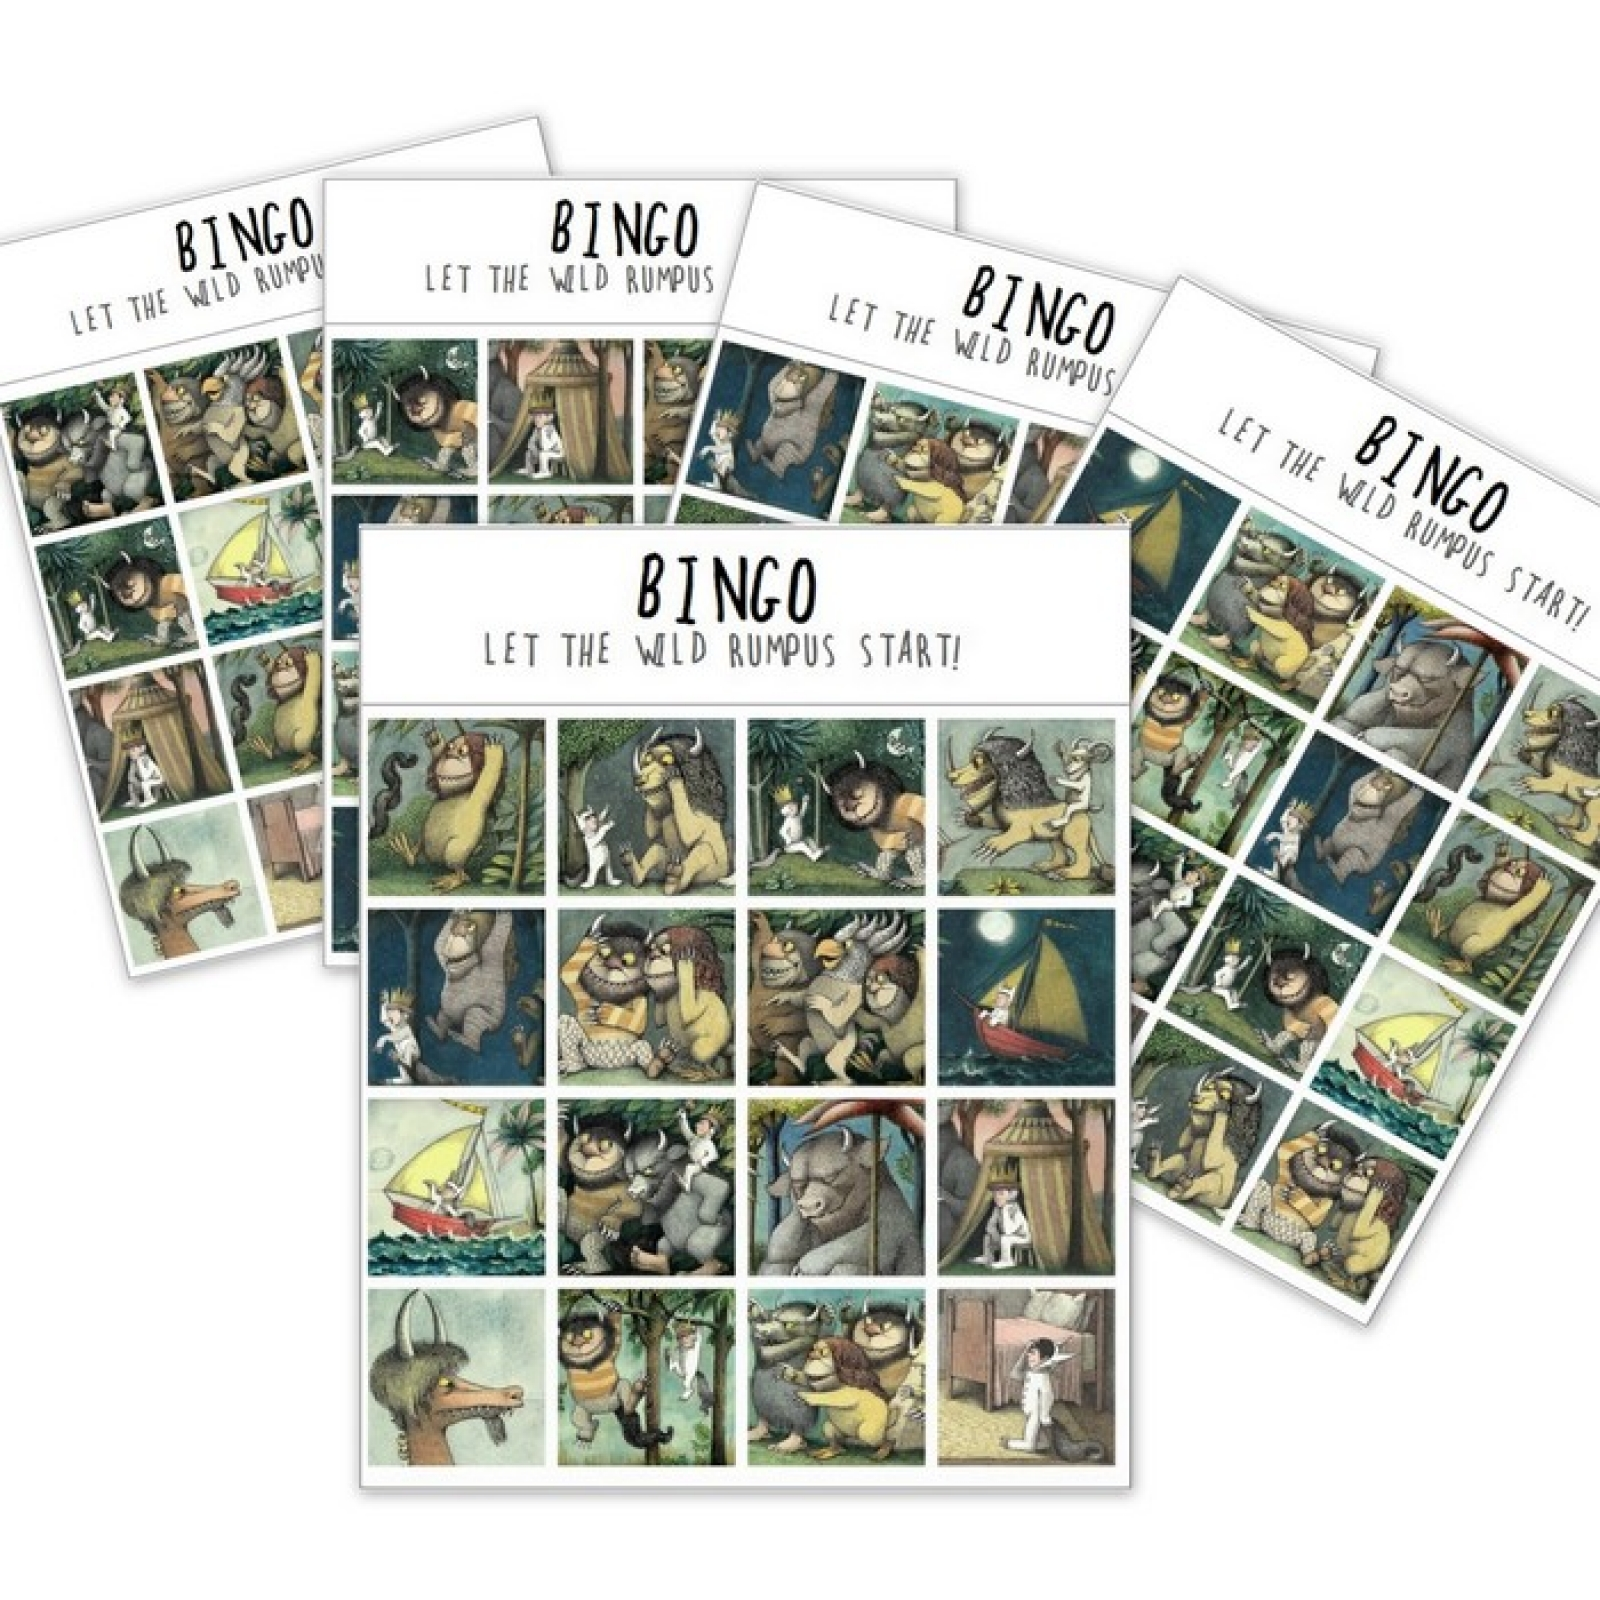 graphic regarding Let the Wild Rumpus Start Printable named BINGO! PDF down load wild components match (24 playing cards)